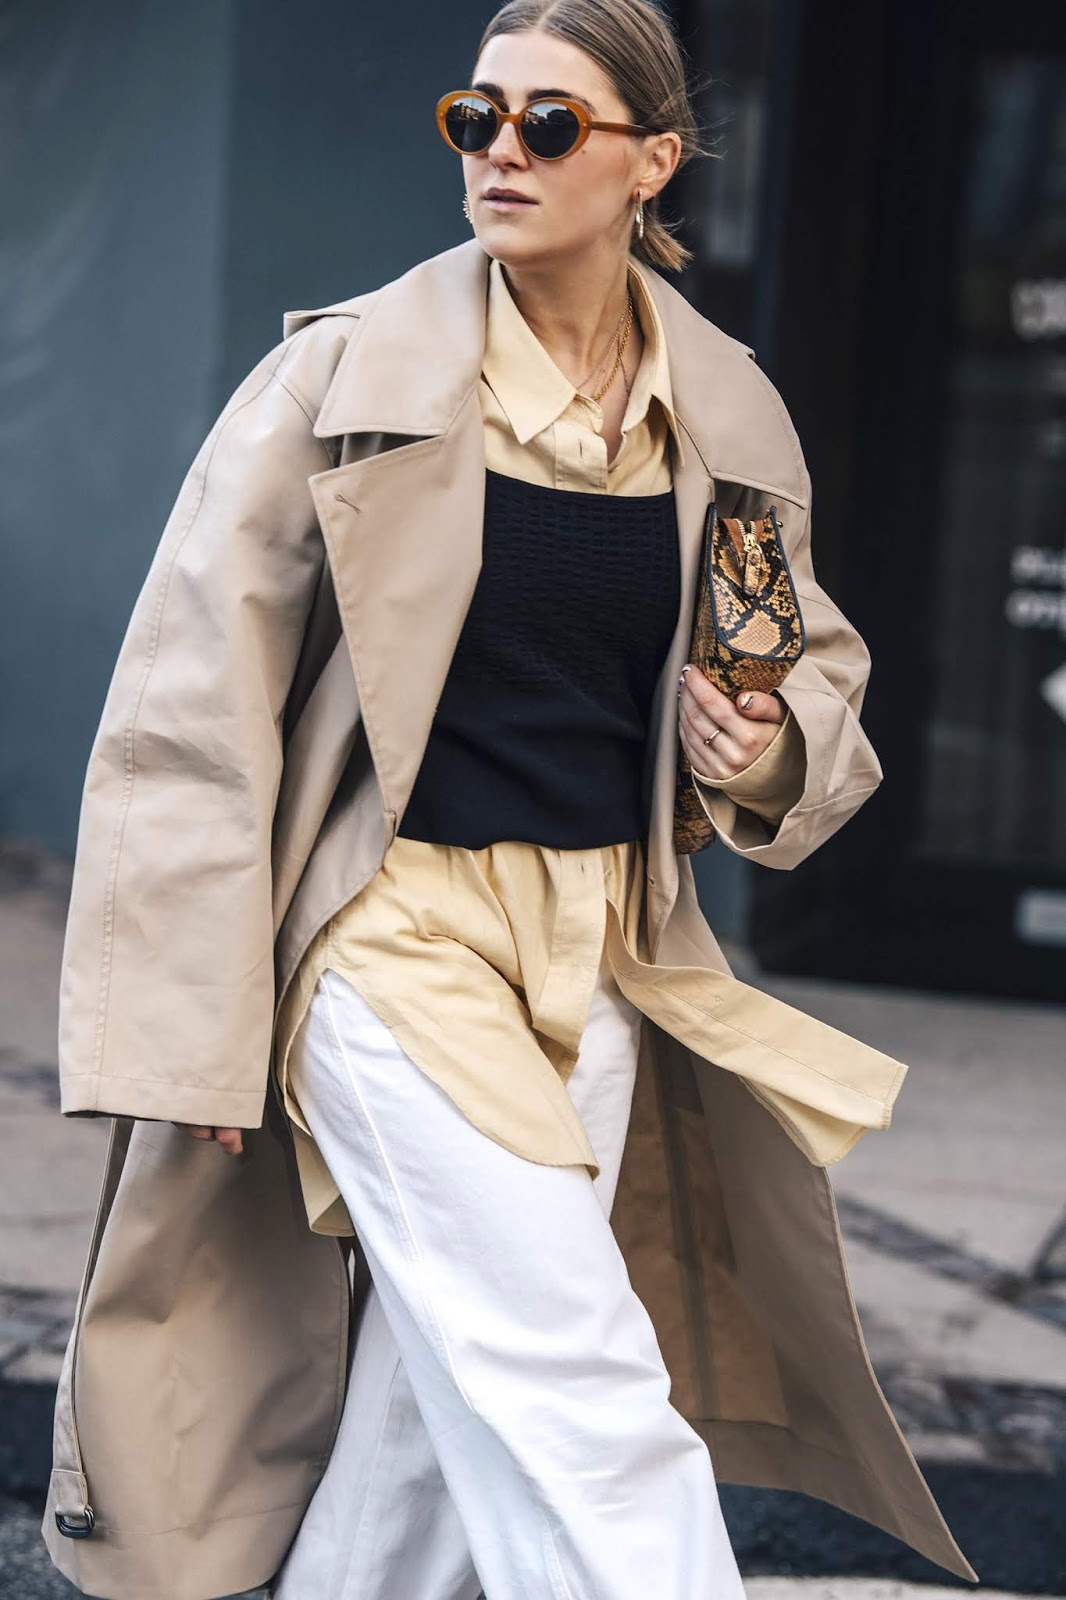 The Street Style Way to Wear Layers This Season — Minimalist Scandi Outfit — Orange Oval Sunglasses, Trench Coat, Button-Down, Snakeskin Bag, Tank Top, and White Pants